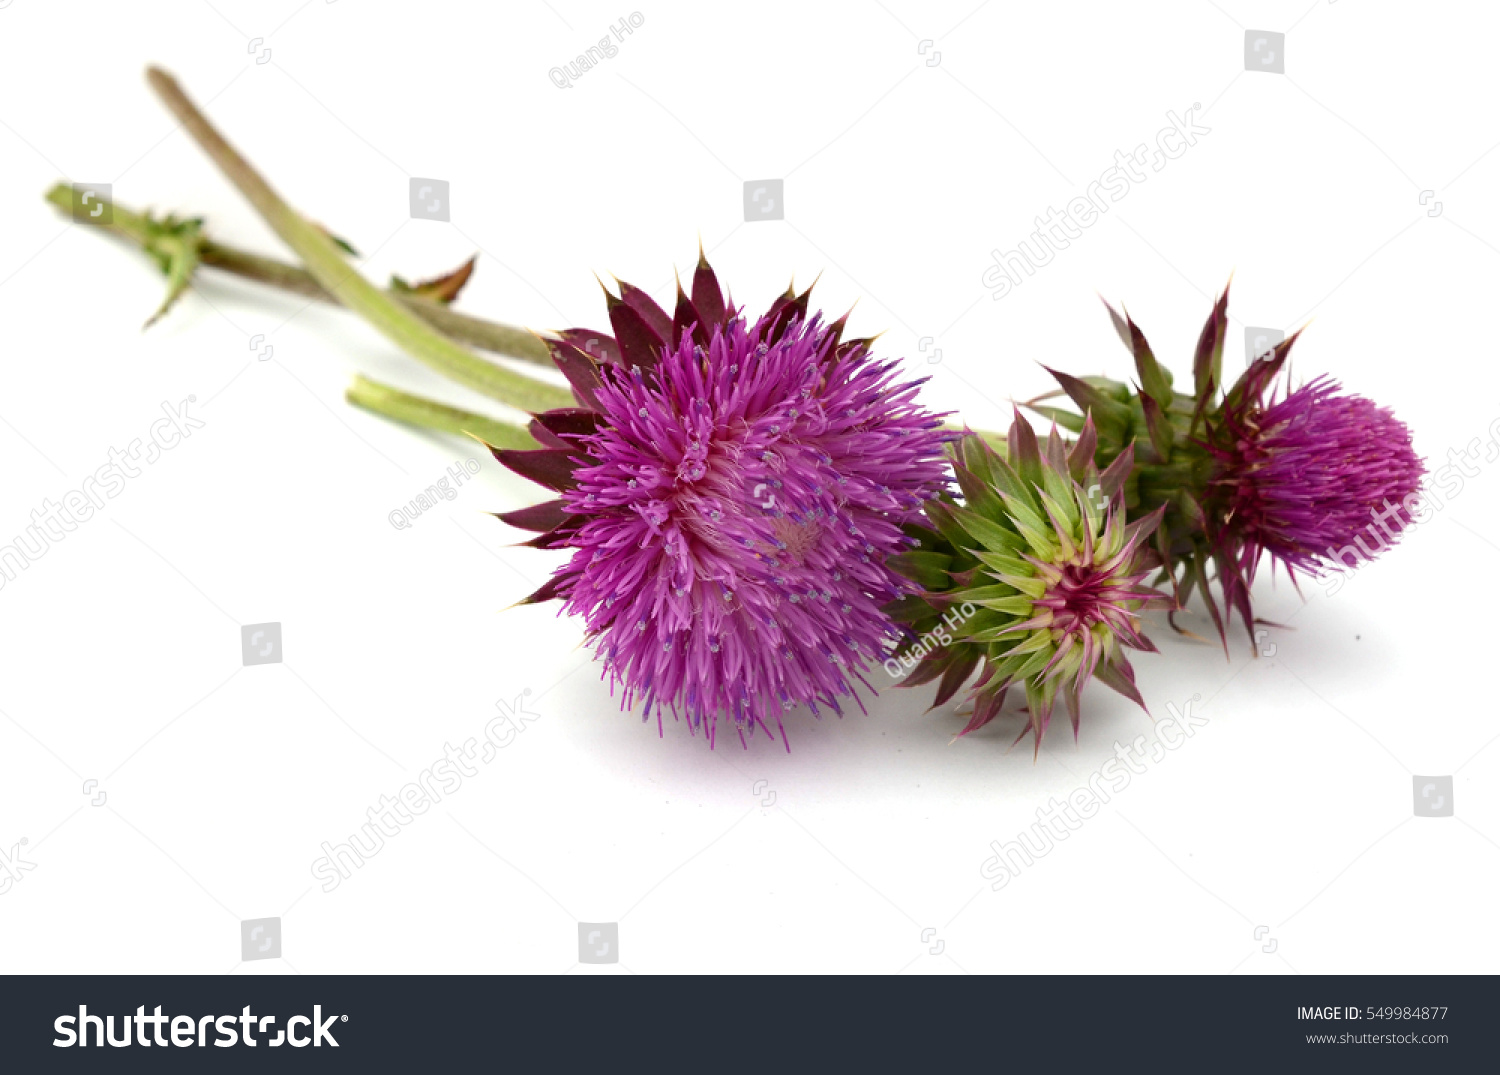 Thistles Flower And Bud Isolated On White Ez Canvas